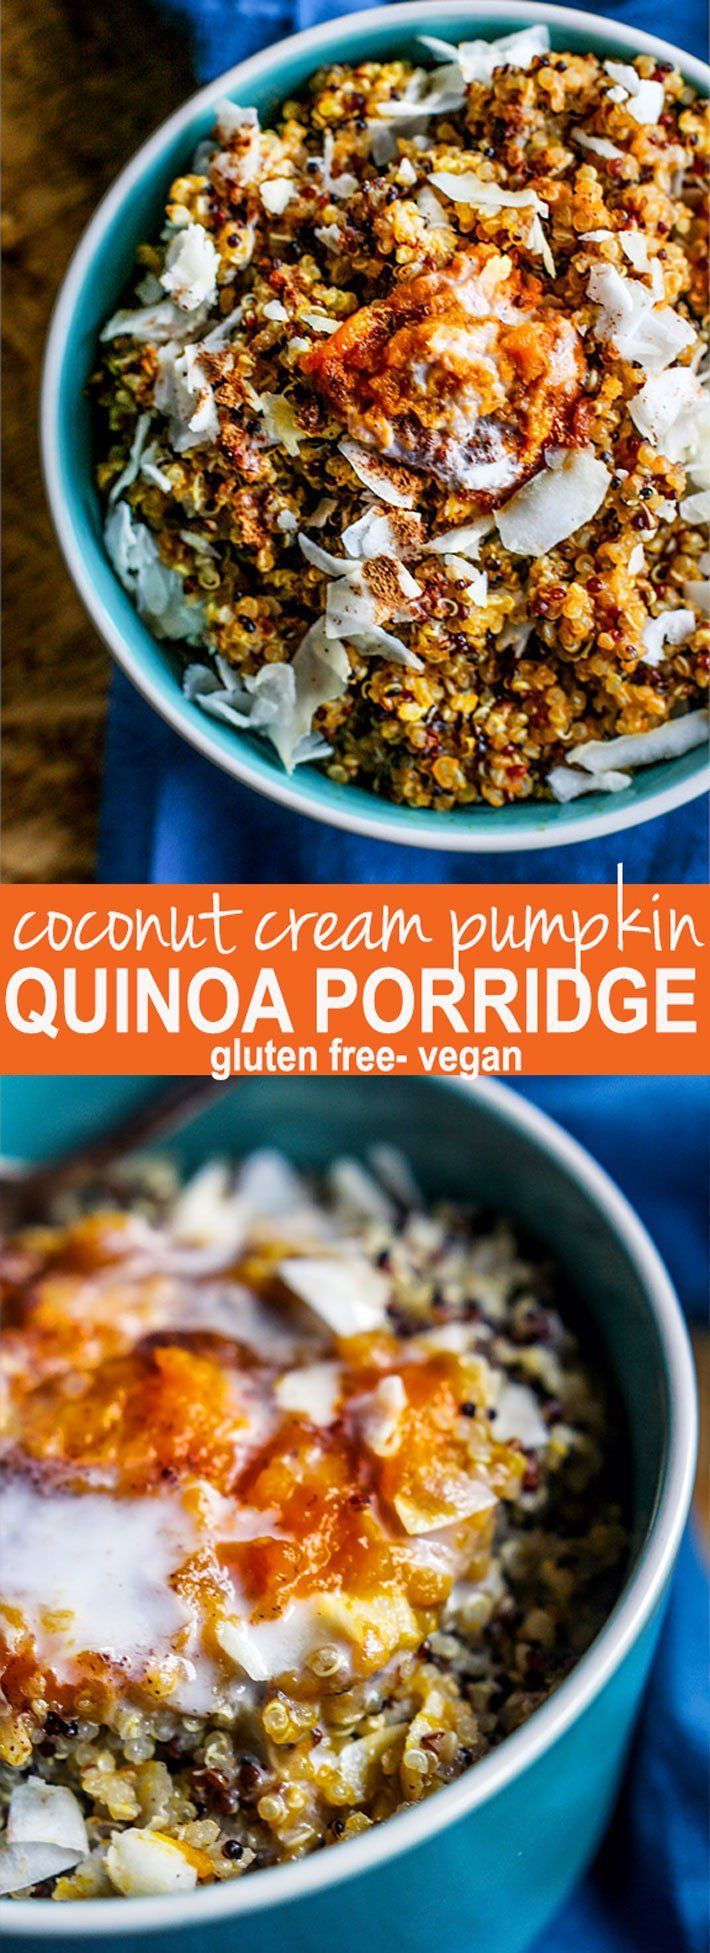 Gluten Free Coconut Creamed Pumpkin Quinoa Porridge. A vegan friendly protein rich breakfast perfect for Fall. Pumpkin and Coconut Cream add in a balance of healthy fats and fiber to make this one powerhouse breakfast! Easy to make on stove top, crock pot, or in a rice cooker.